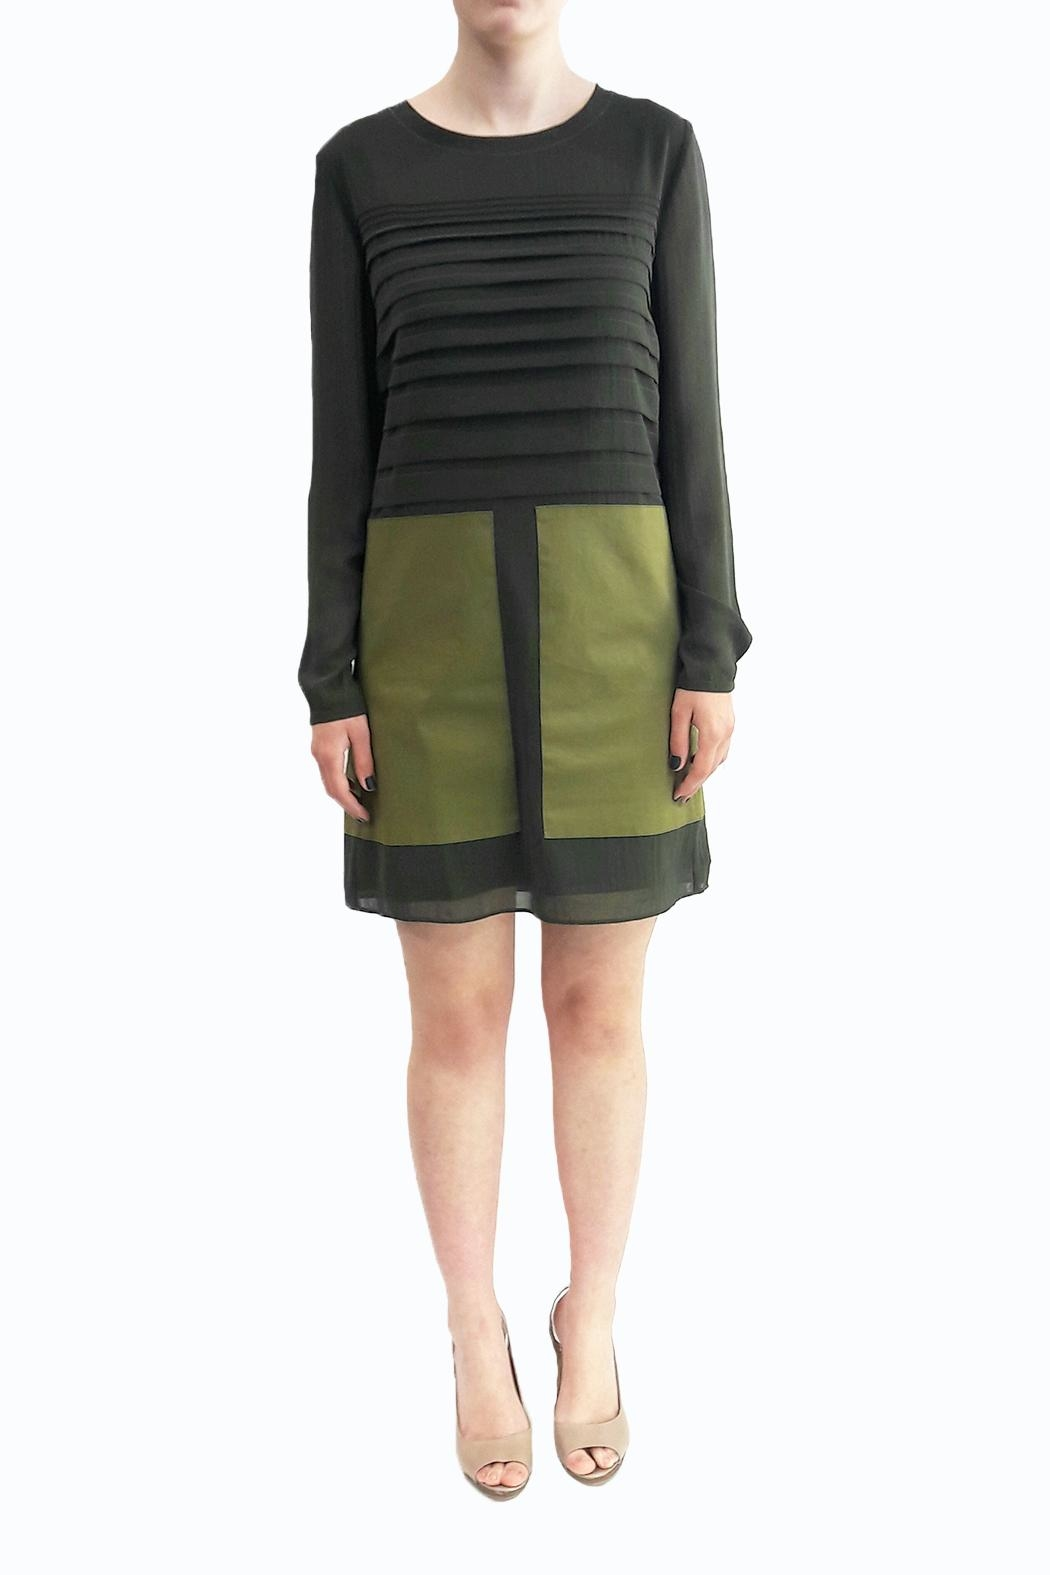 Sonia by Sonia Rykiel Khaki Dress - Main Image